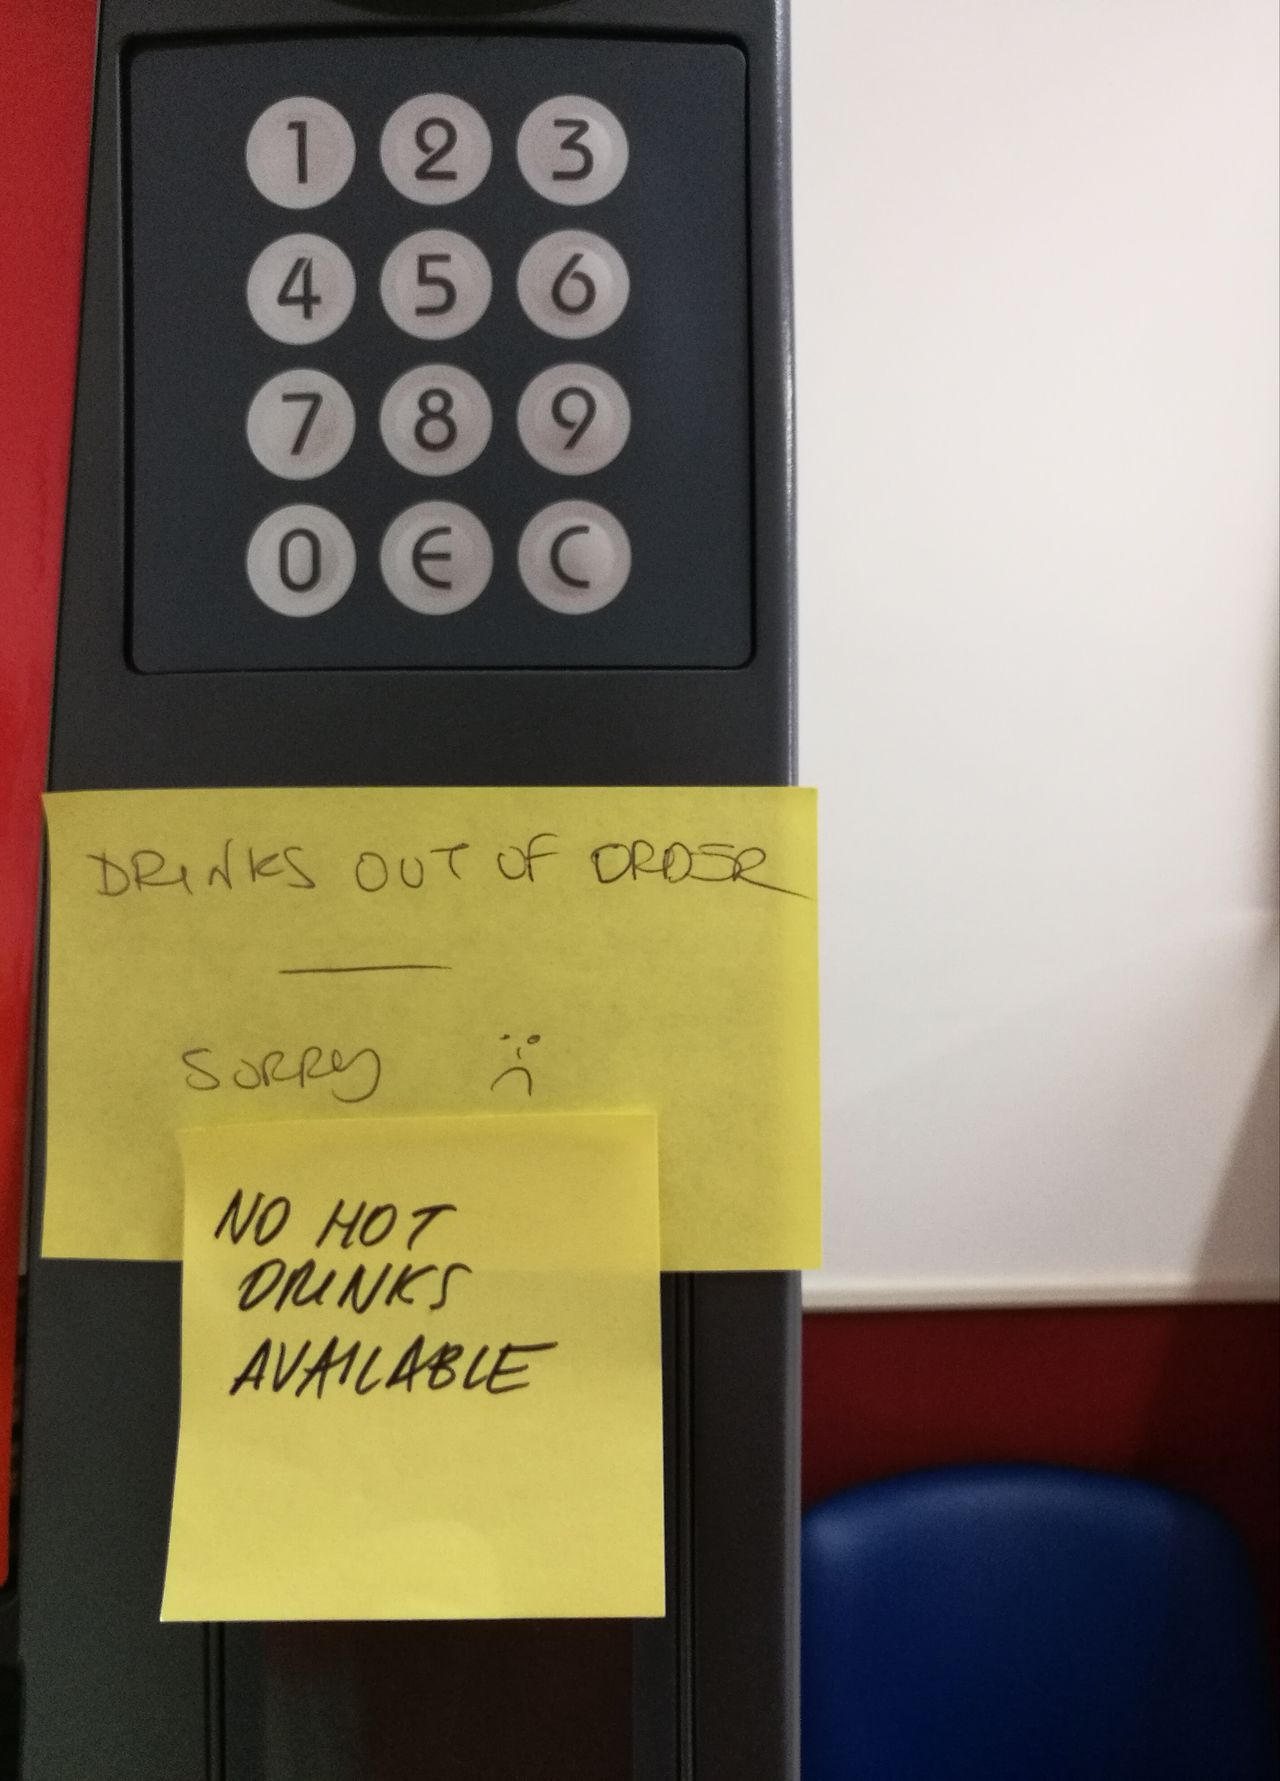 No People Indoors  Close-up Day Out Of Order Automatic Vending Machines Indoors  Indoors